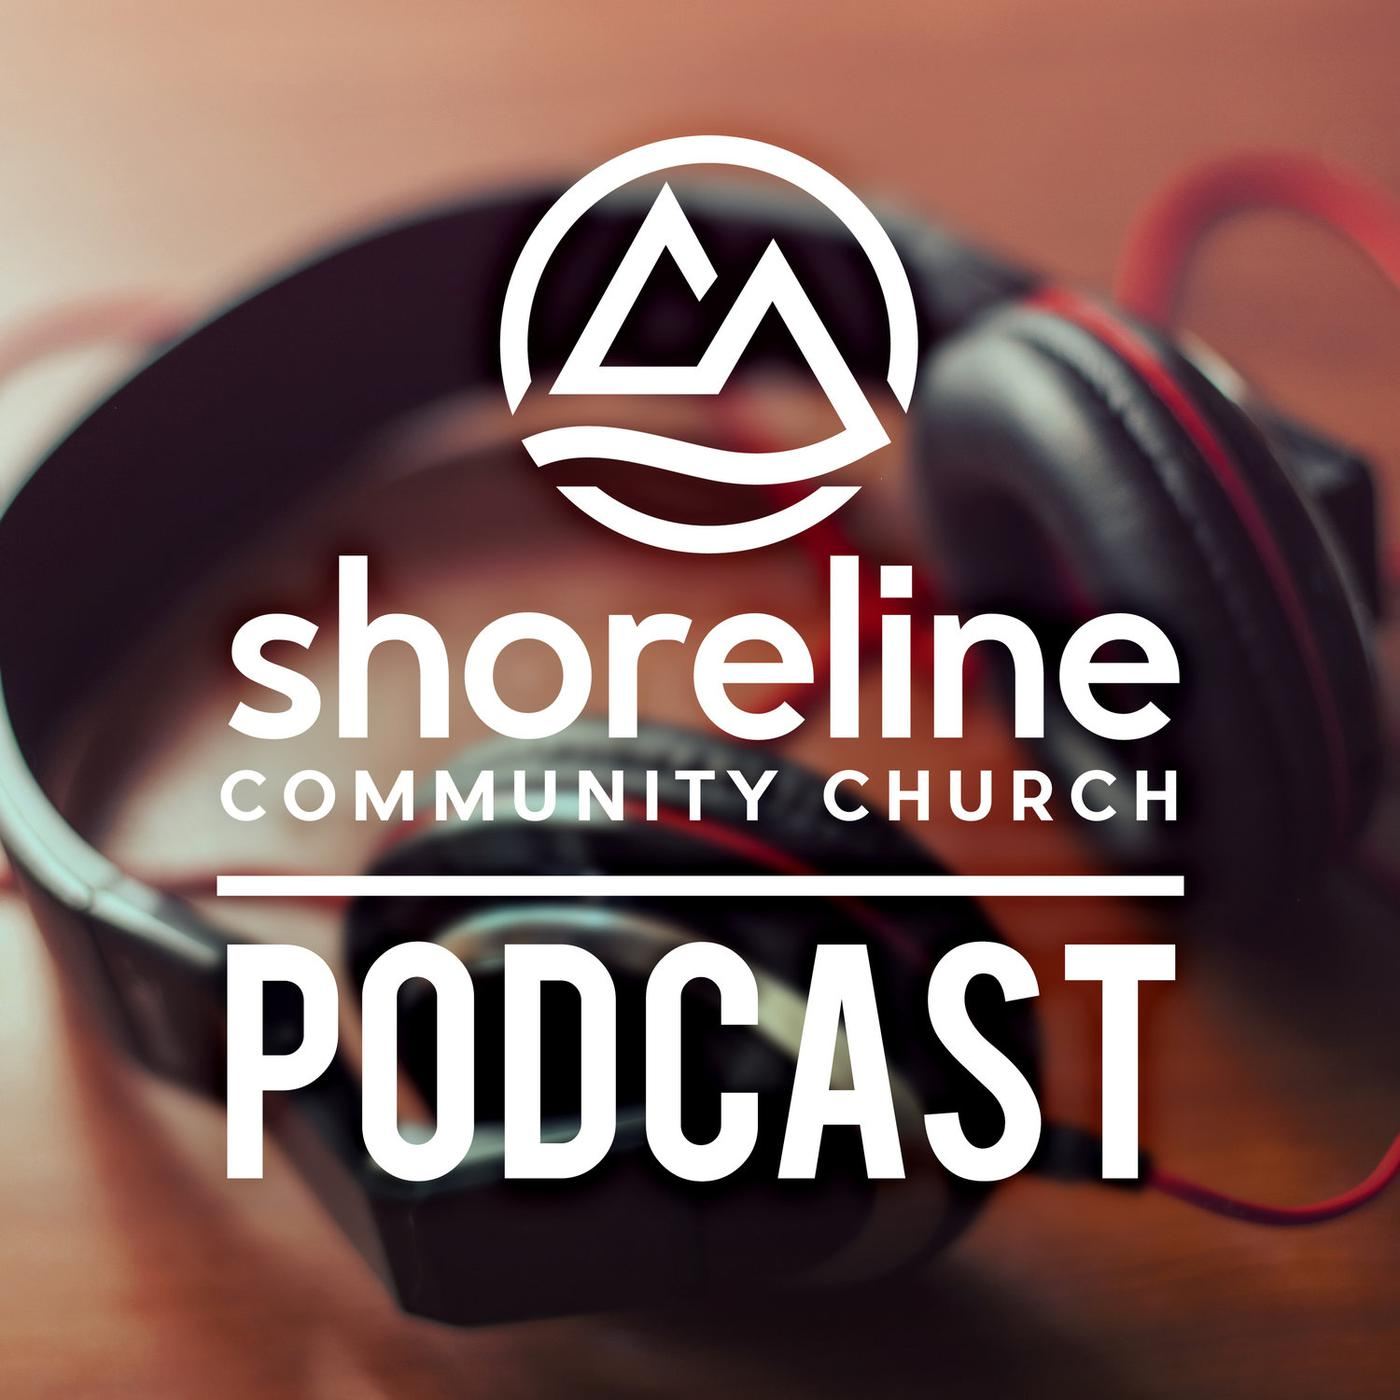 Shoreline Community Church Message Podcast - Shoreline Community